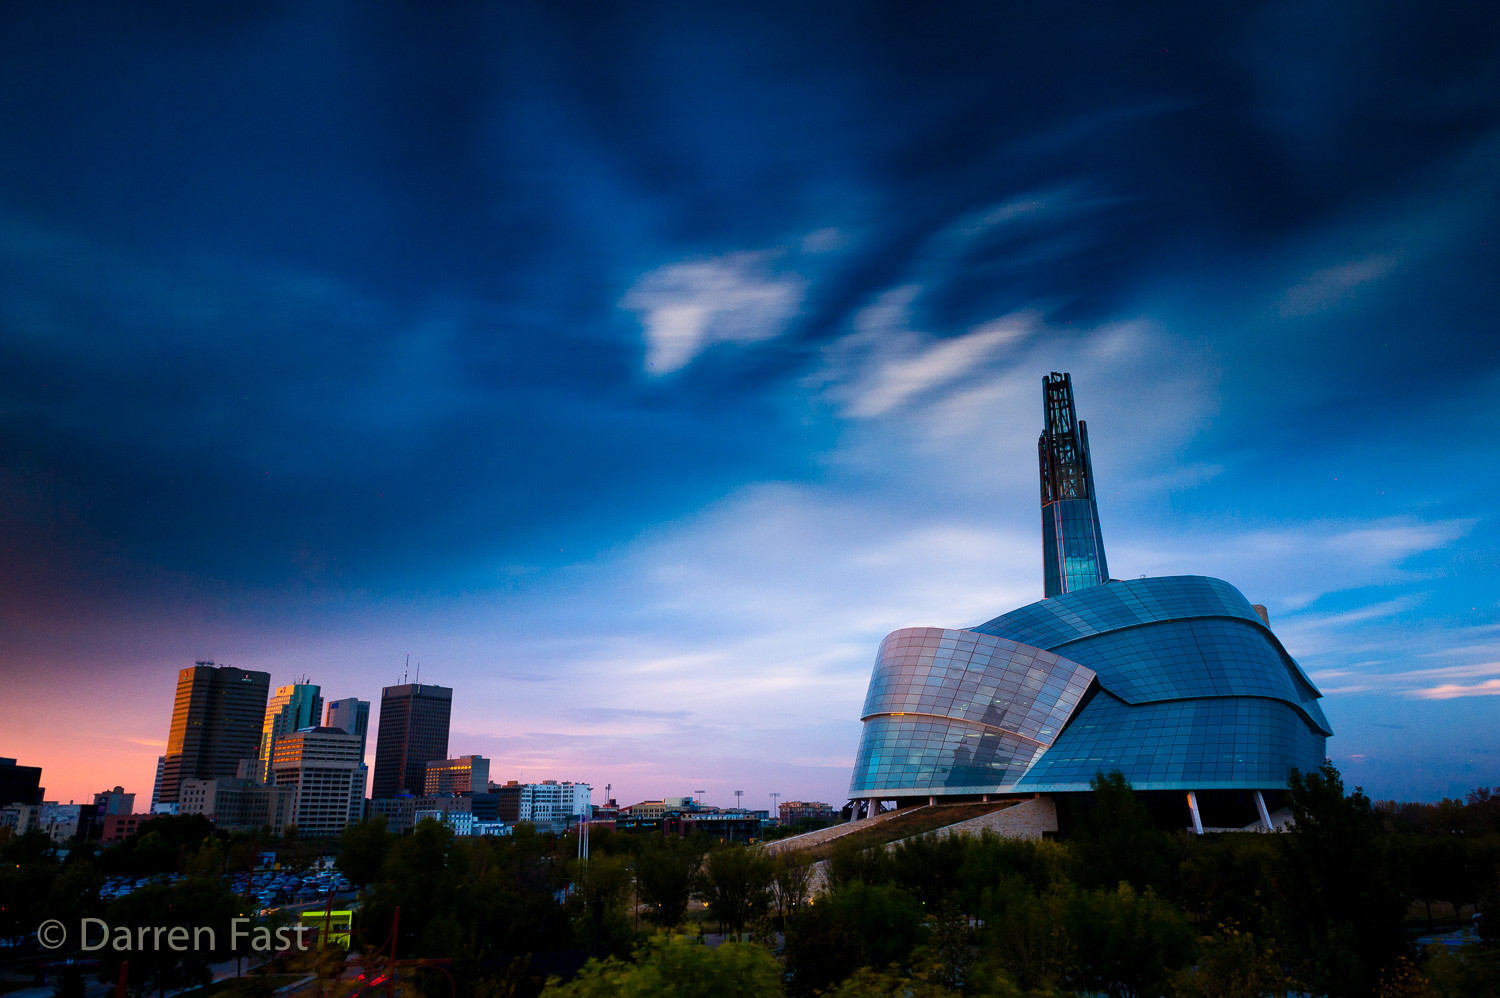 Canadian Museum of Human Rights, Canada